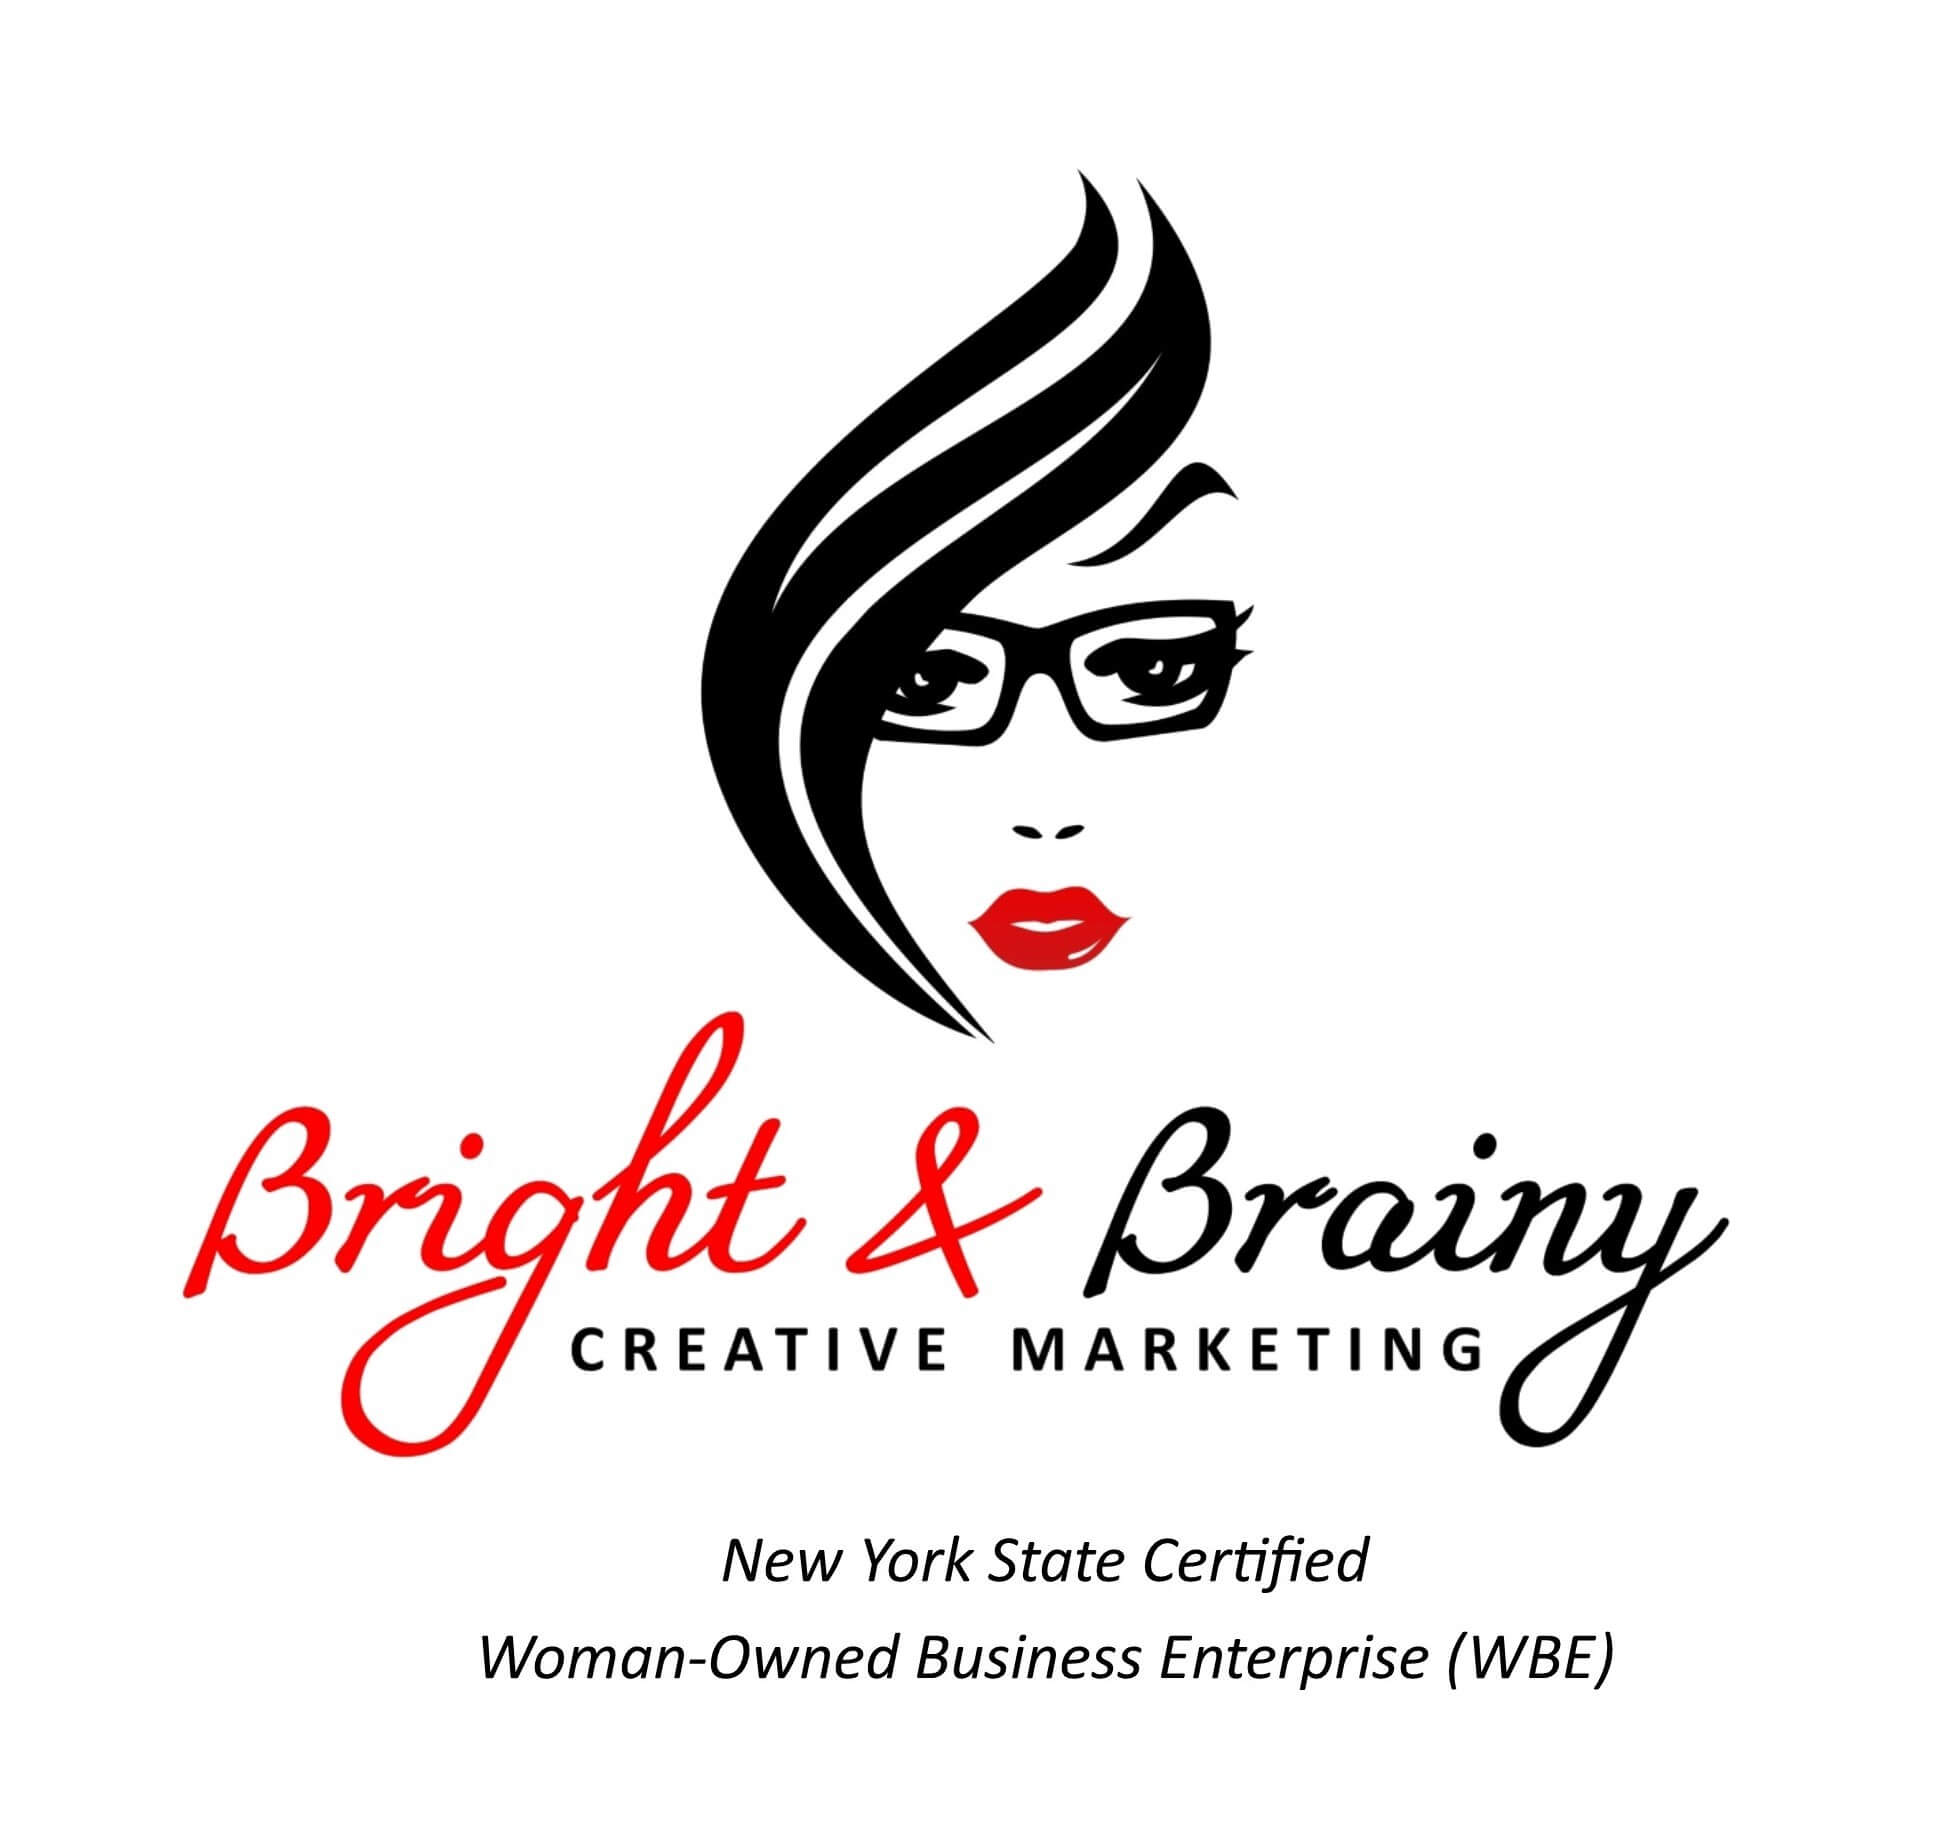 Bright & Brainy Creative Marketing